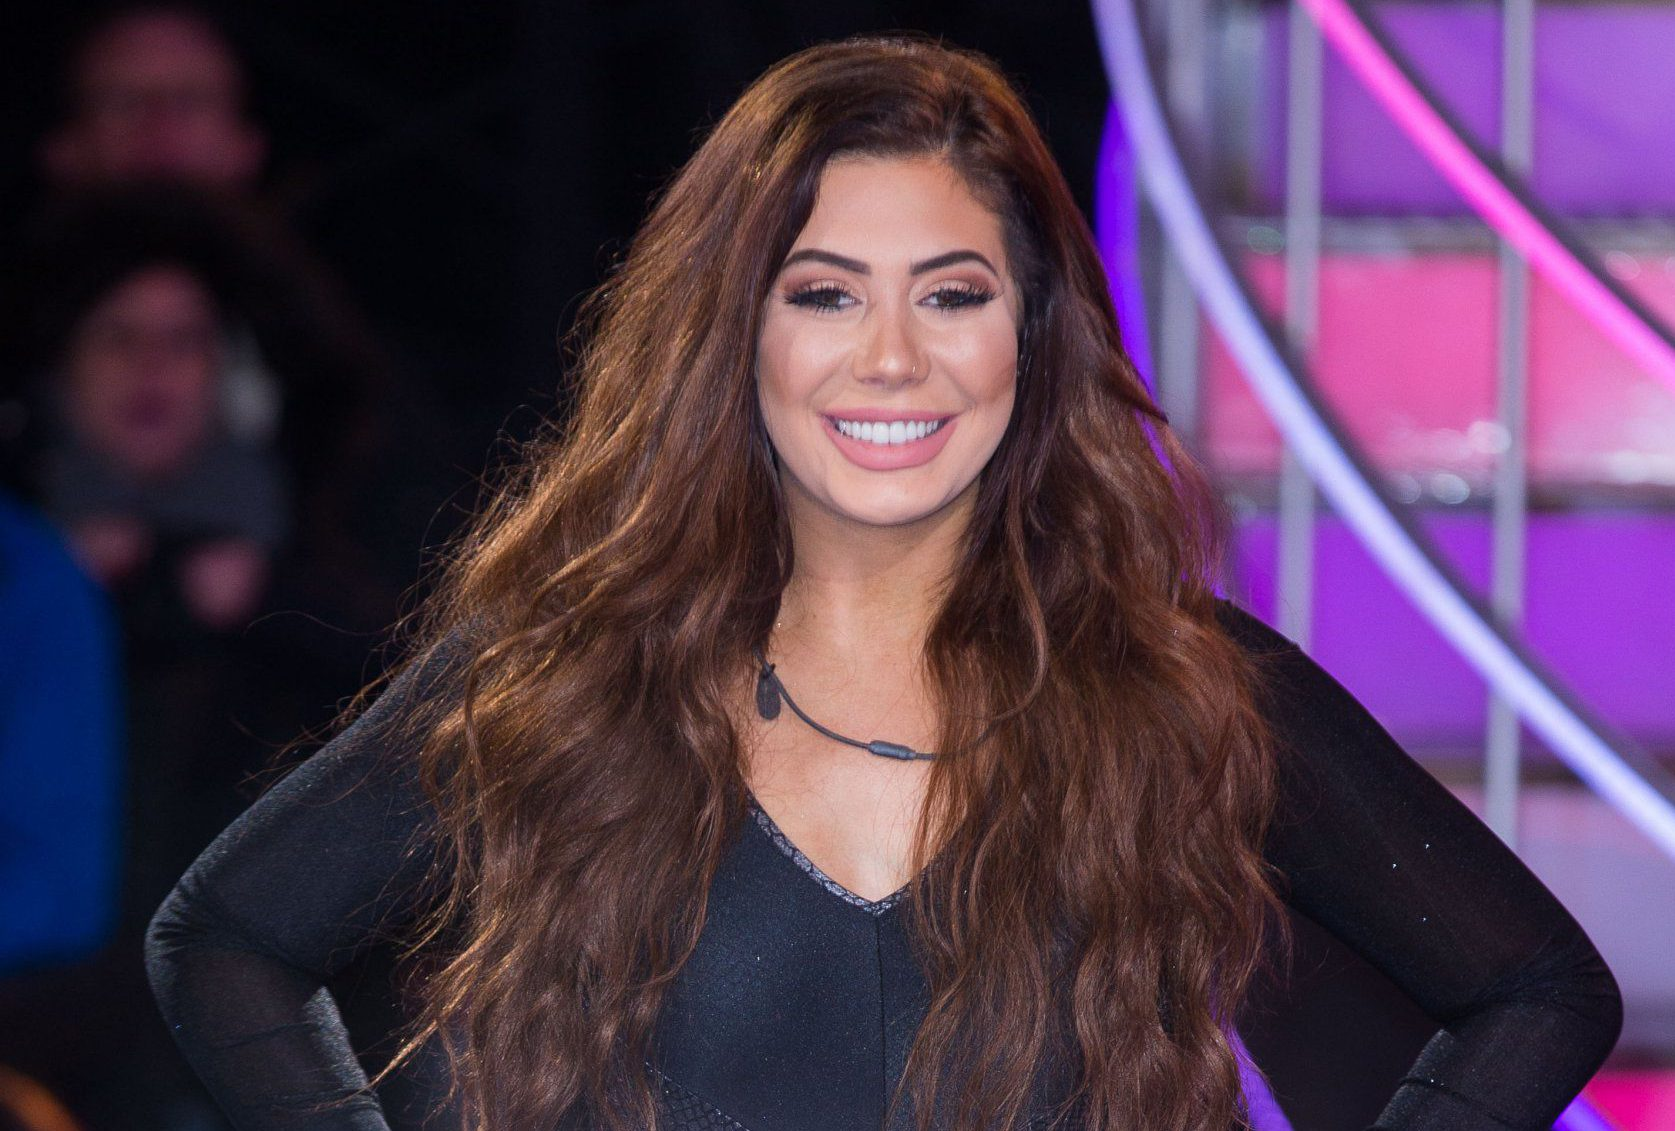 Mandatory Credit: Photo by James Shaw/REX/Shutterstock (7945107f) Chloe Ferry 'Celebrity Big Brother' TV show, Elstree Studios, Hertfordshire, UK - 20 Jan 2017